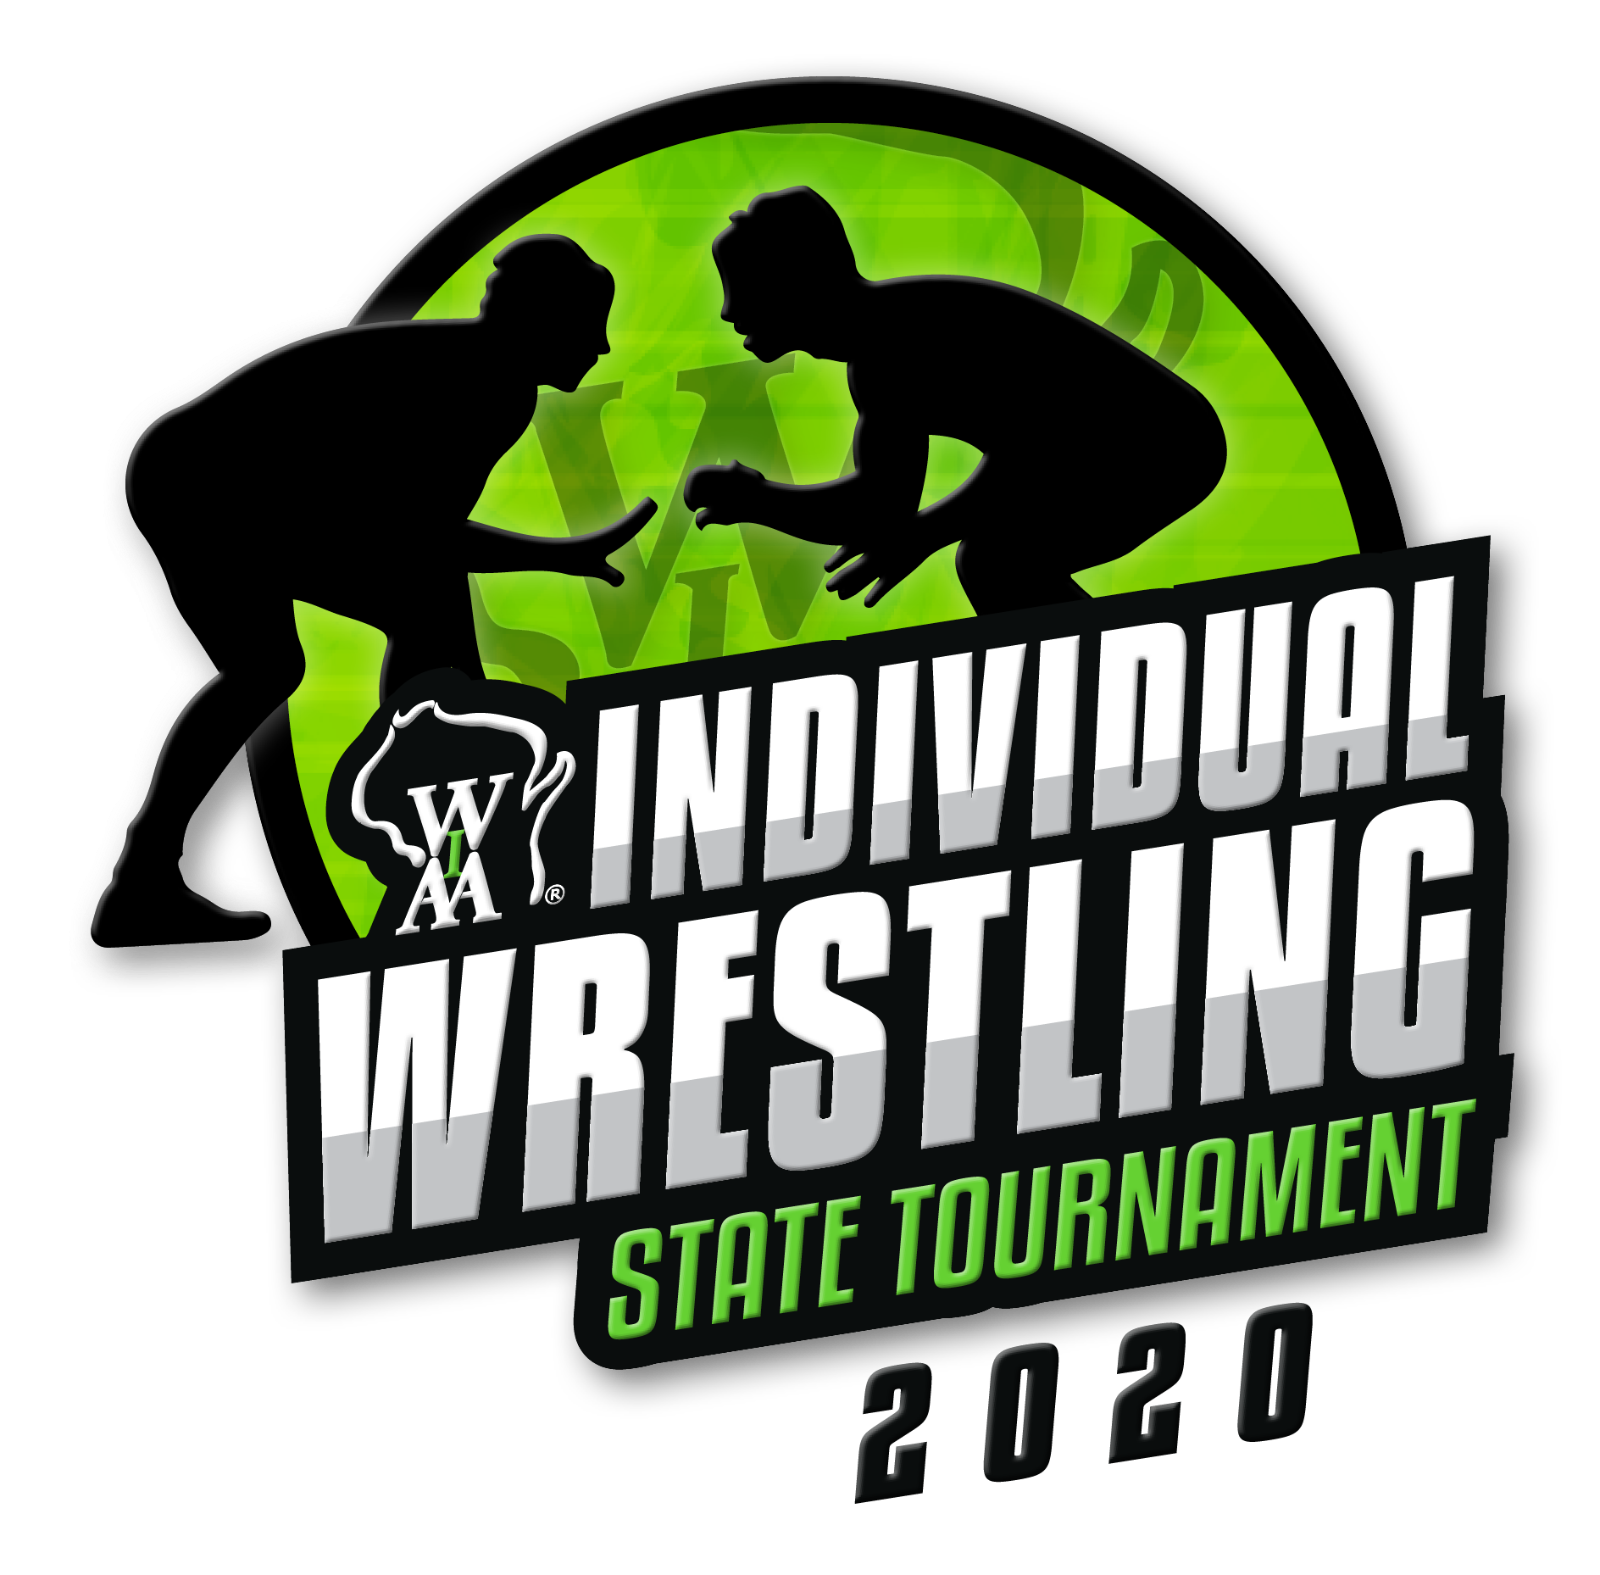 Wrestlers Qualify 4 to the State Tournament!